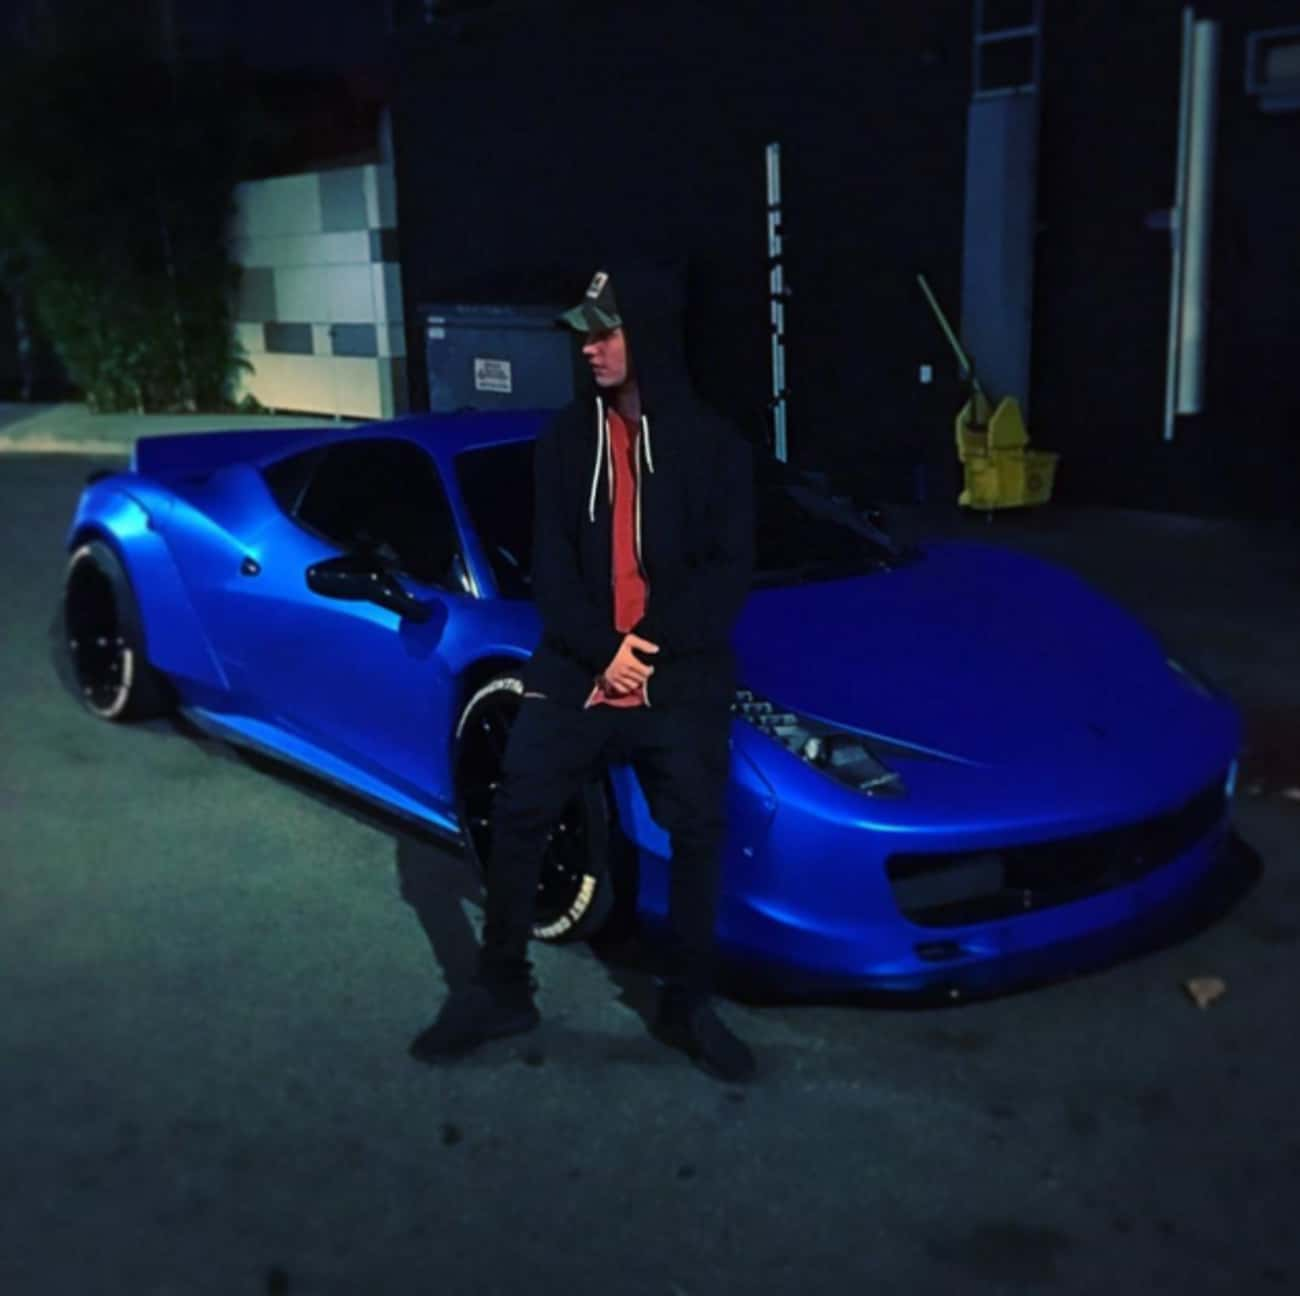 Ferrari 458 Italia is listed (or ranked) 1 on the list Cars Owned By Justin Bieber That He's Probably Only Driven Once